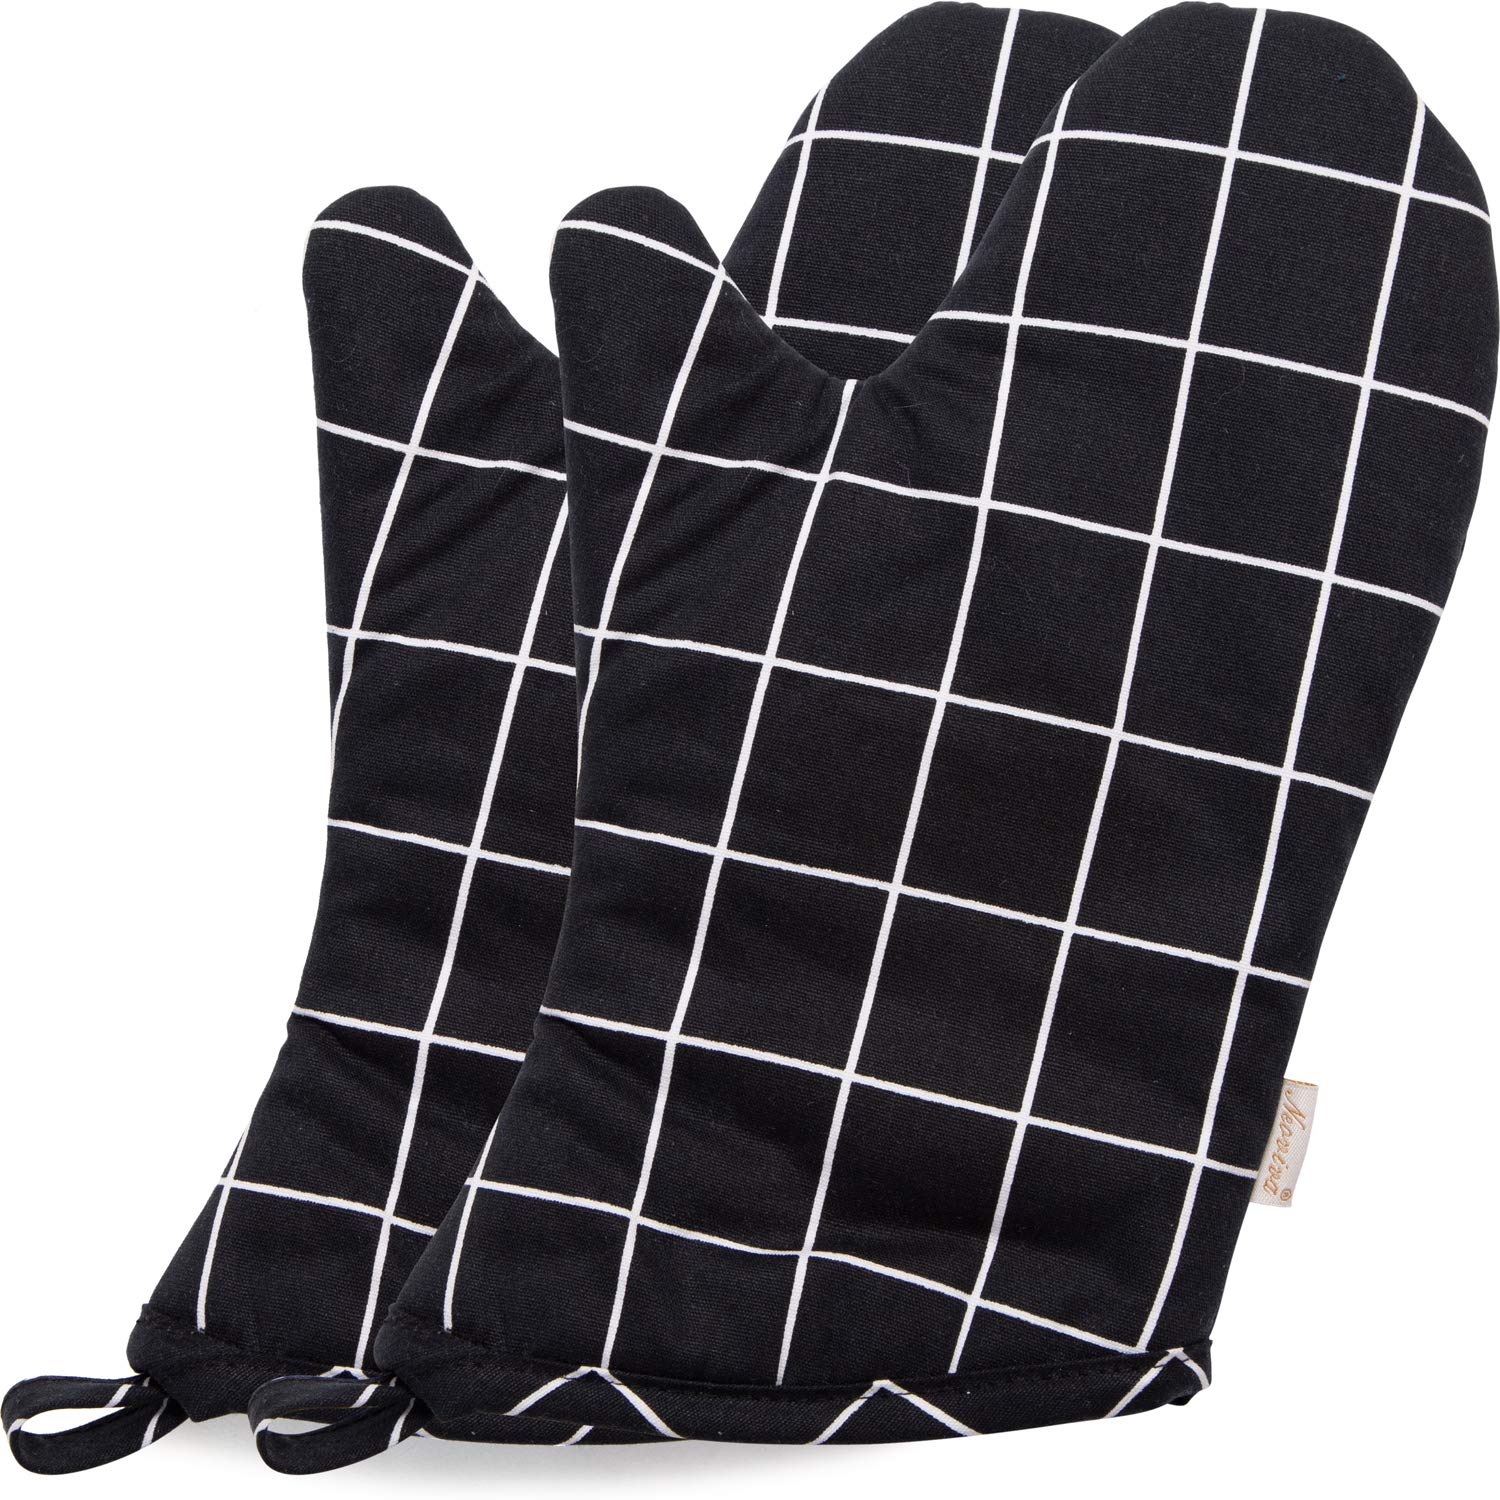 NEOVIVA Heat Resistant Oven Mitts for Everyday Kitchen, Cotton Oven Mitt Set of 2 for Adults, Nordic Plaid Pirate Black